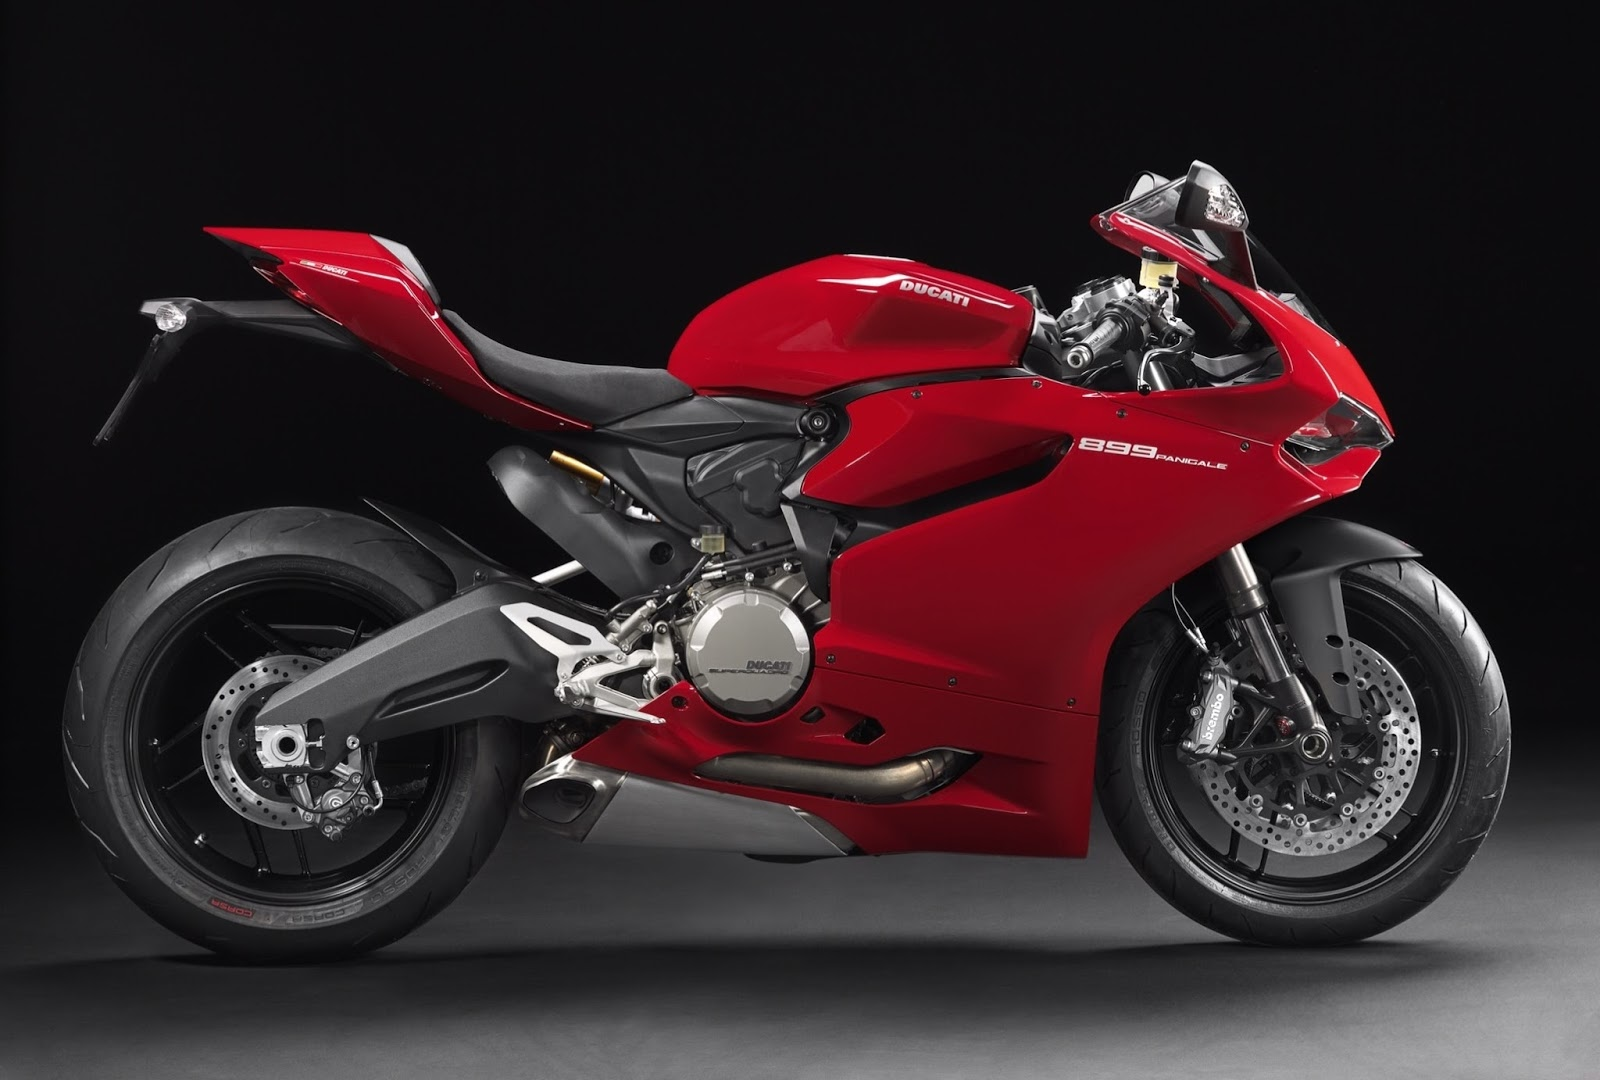 2014 ducati 899 panigale unveiled specifications features and price shiftnburn. Black Bedroom Furniture Sets. Home Design Ideas